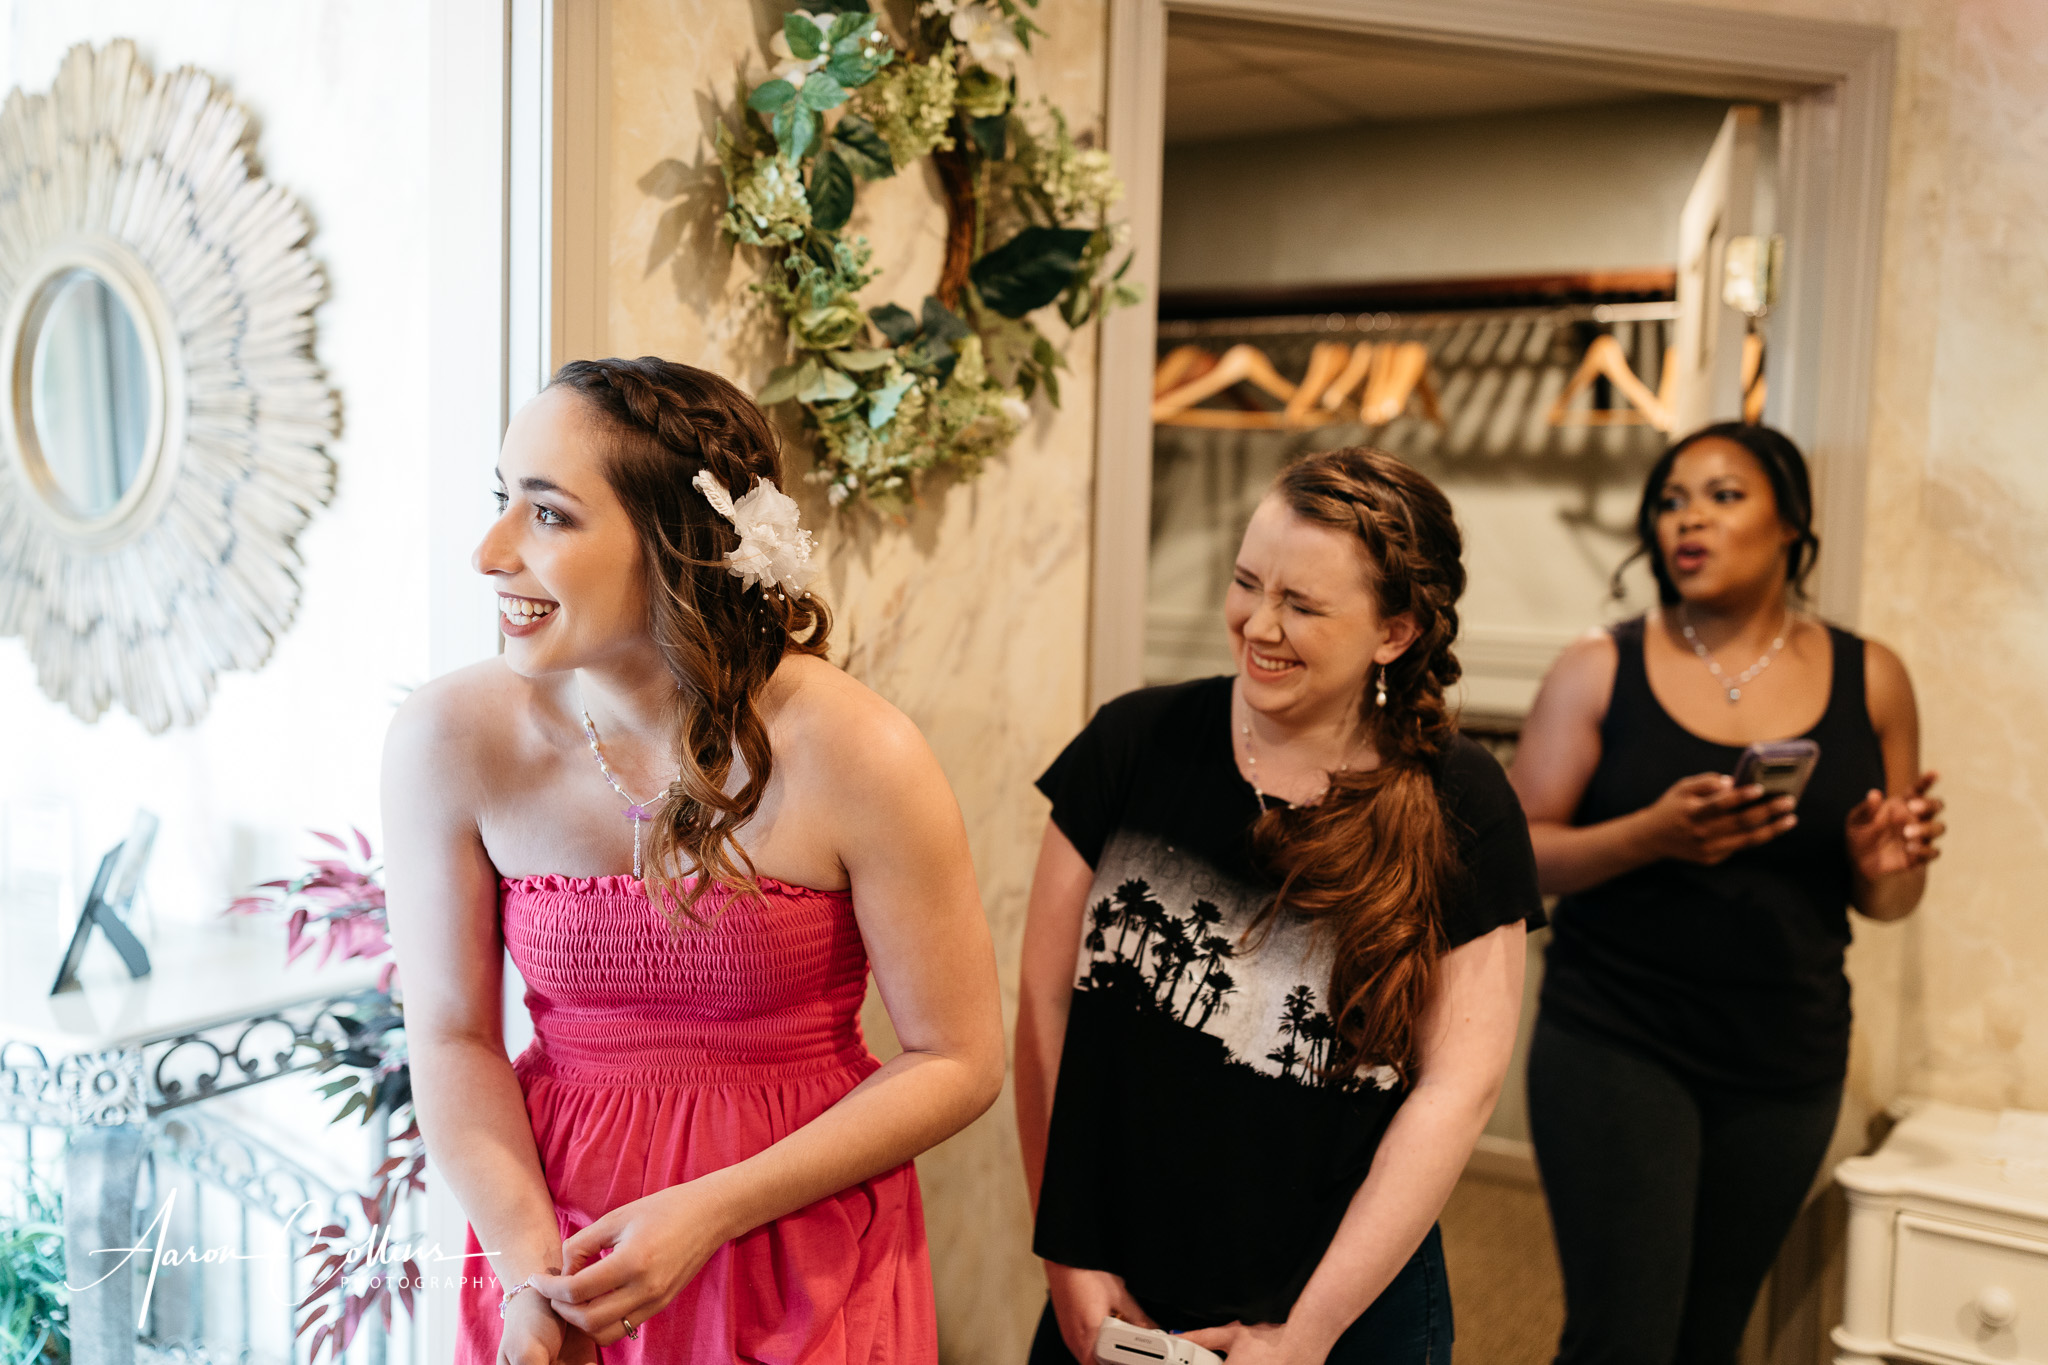 The bride and her entourage of bridesmaids in the bridal room at A Villa Louisa laughing as they wait for a friend to arrive for the wedding.